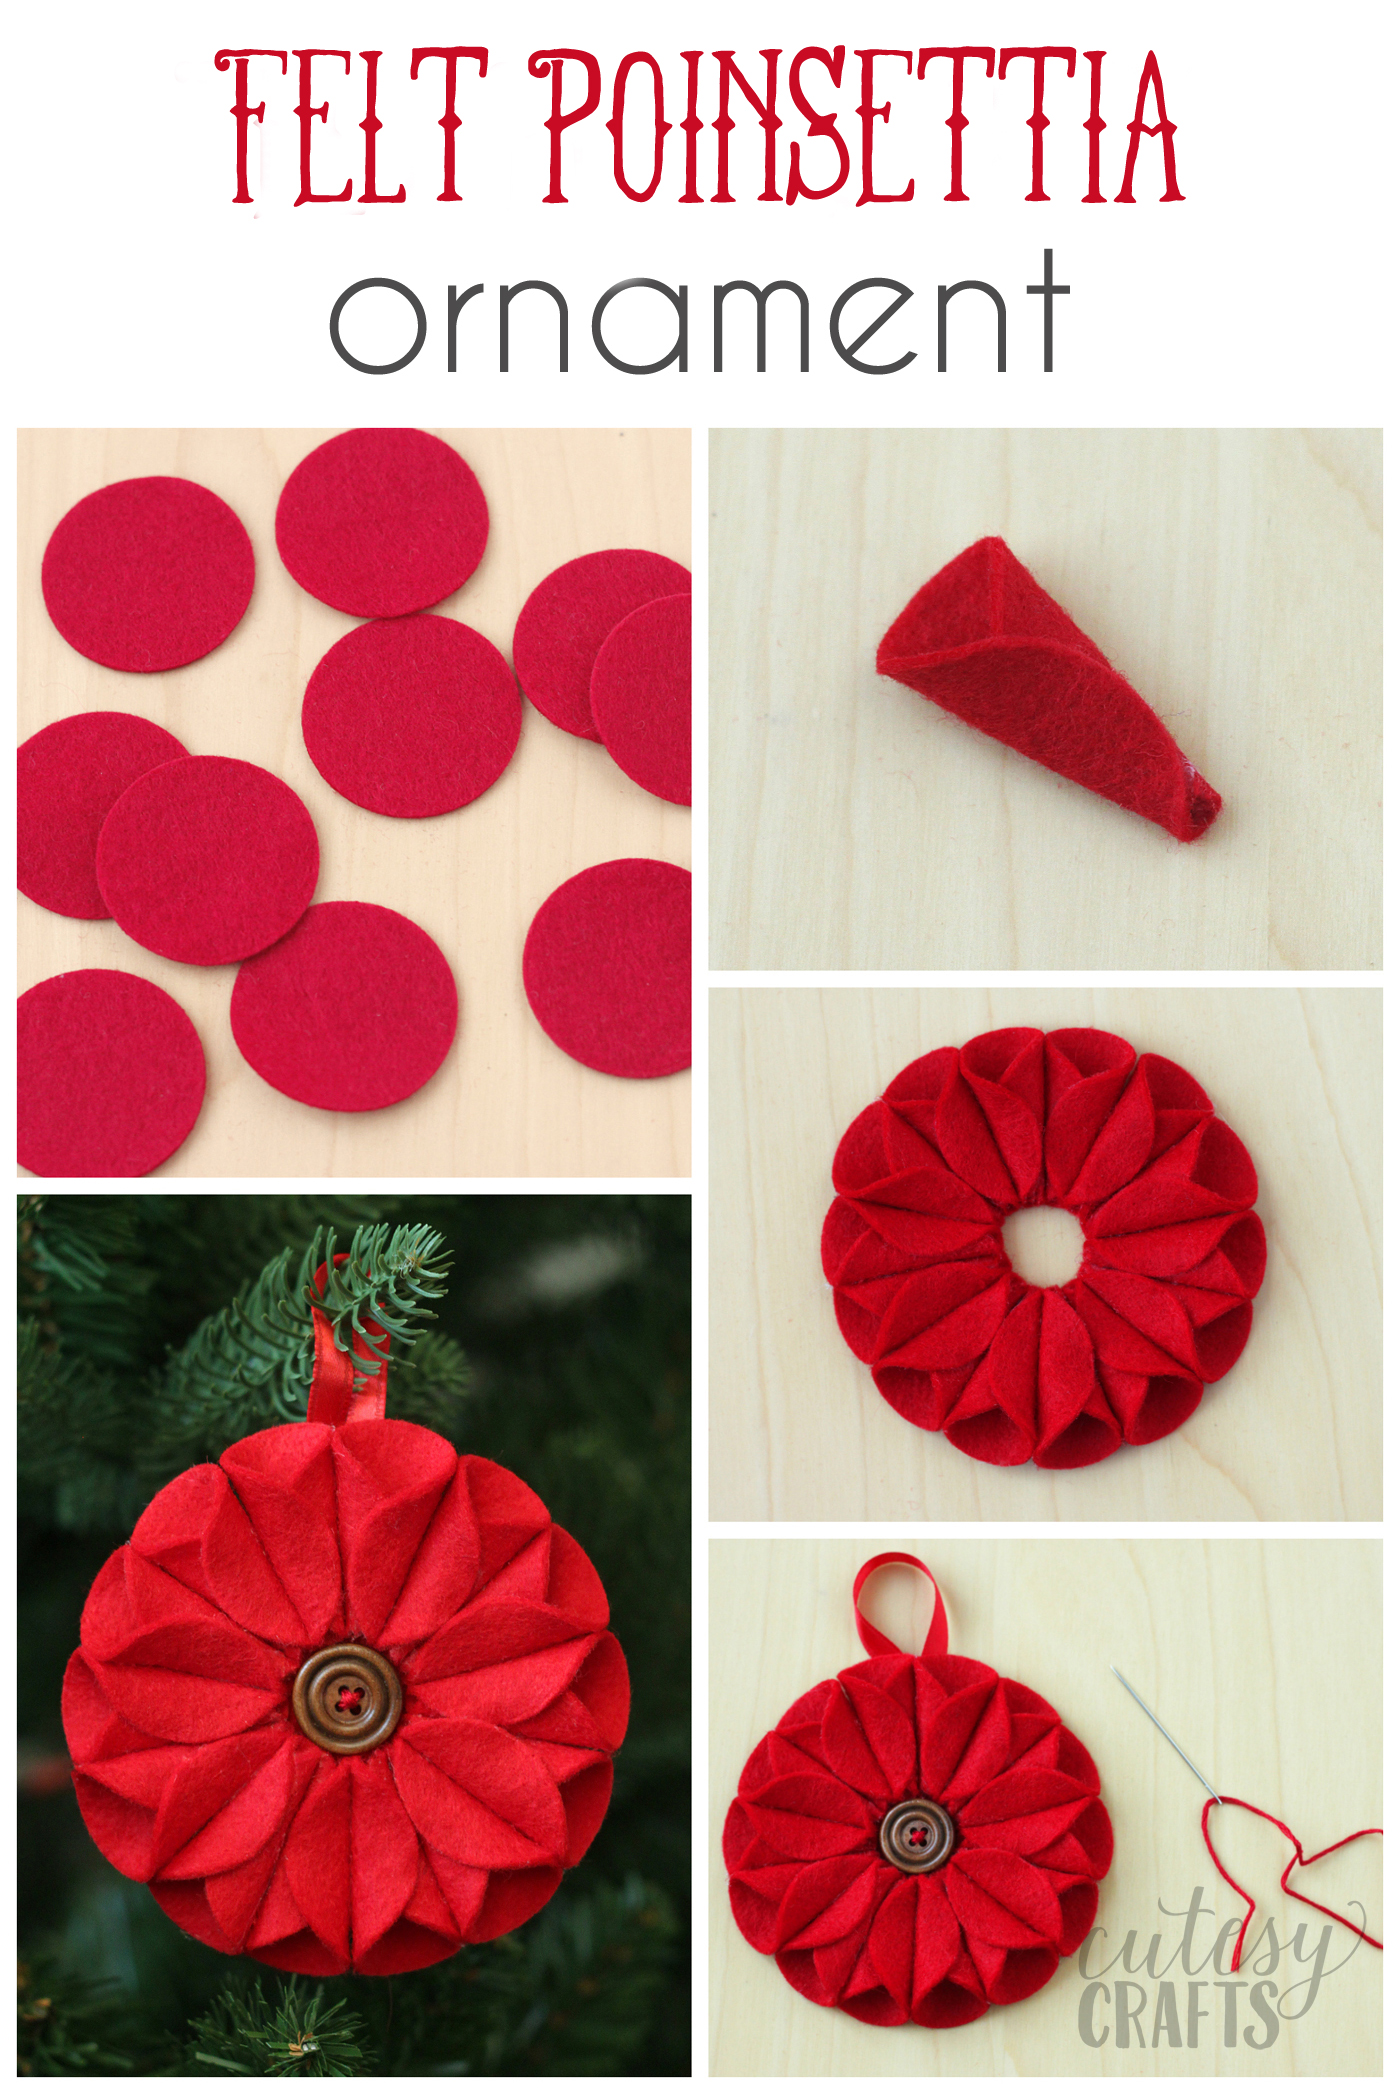 felt-poinsettia-ornament-01